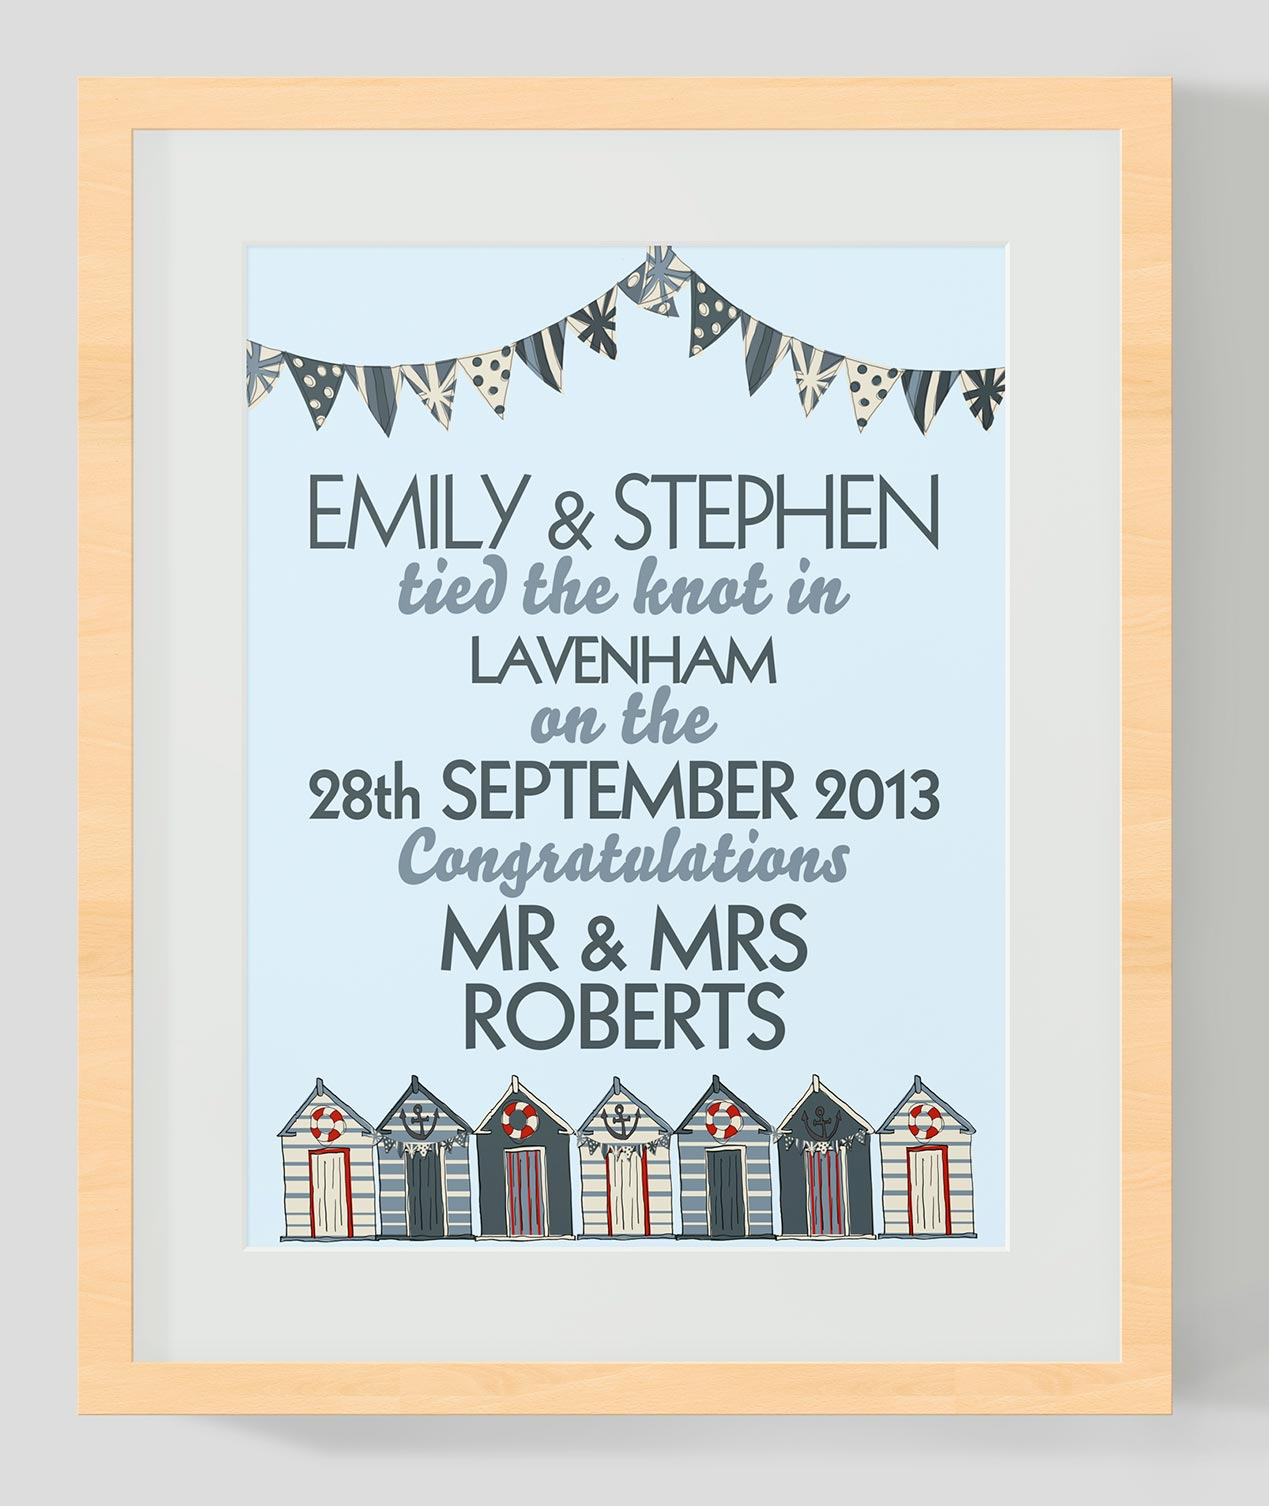 Wedding Print For Stephen & Emily: By Factory, Digital Agency In Manchester